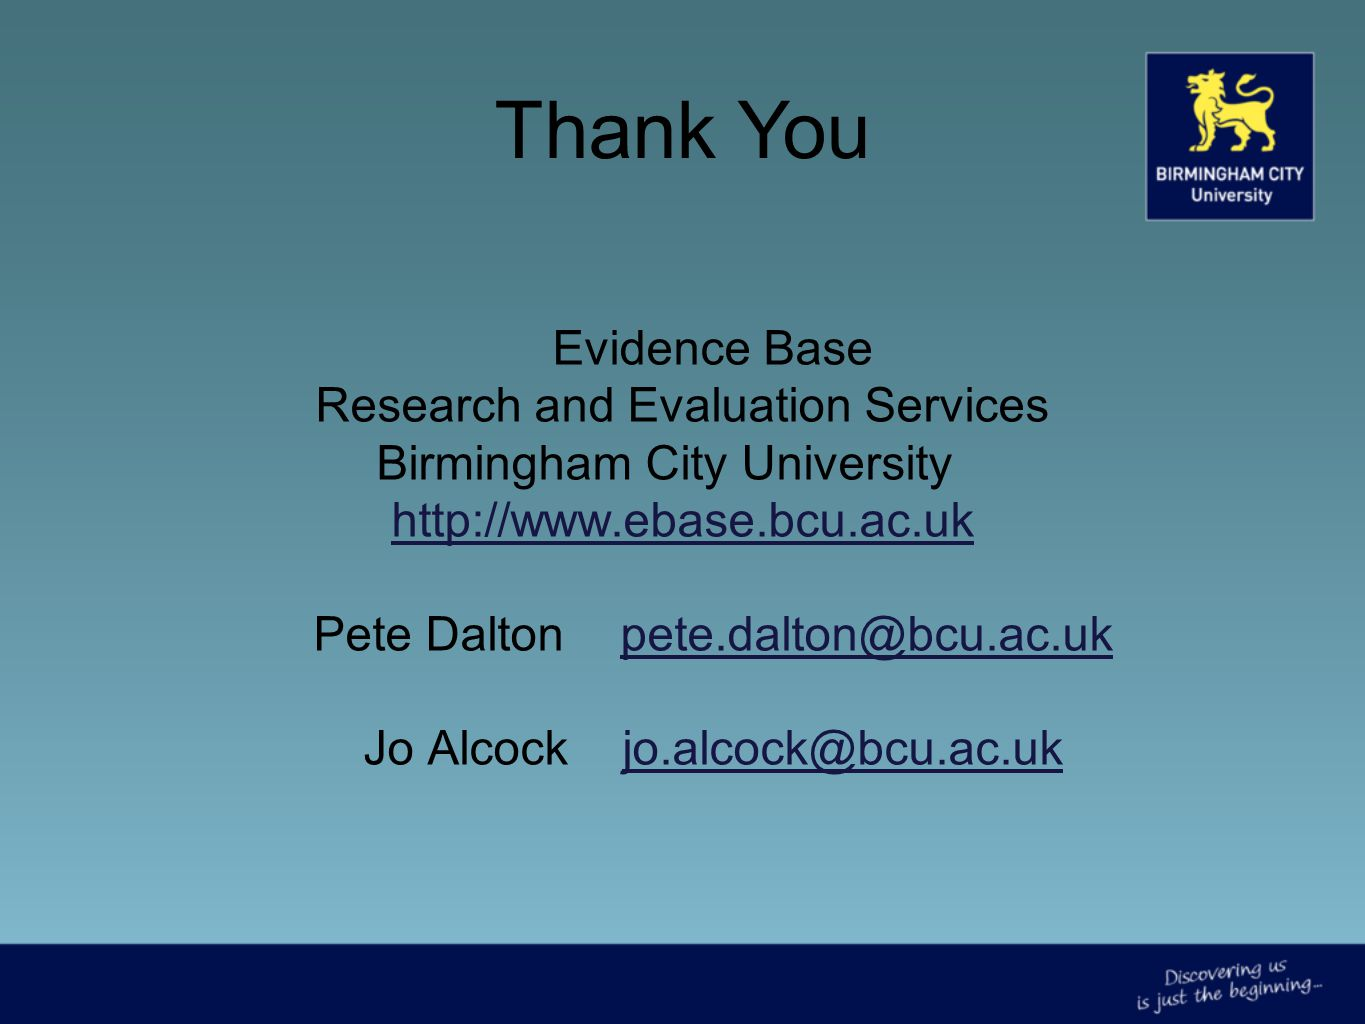 Evidence Base Research and Evaluation Services Birmingham City University http://www.ebase.bcu.ac.uk http://www.ebase.bcu.ac.uk Pete Daltonpete.dalton@bcu.ac.ukpete.dalton@bcu.ac.uk Jo Alcock jo.alcock@bcu.ac.ukjo.alcock@bcu.ac.uk Thank You